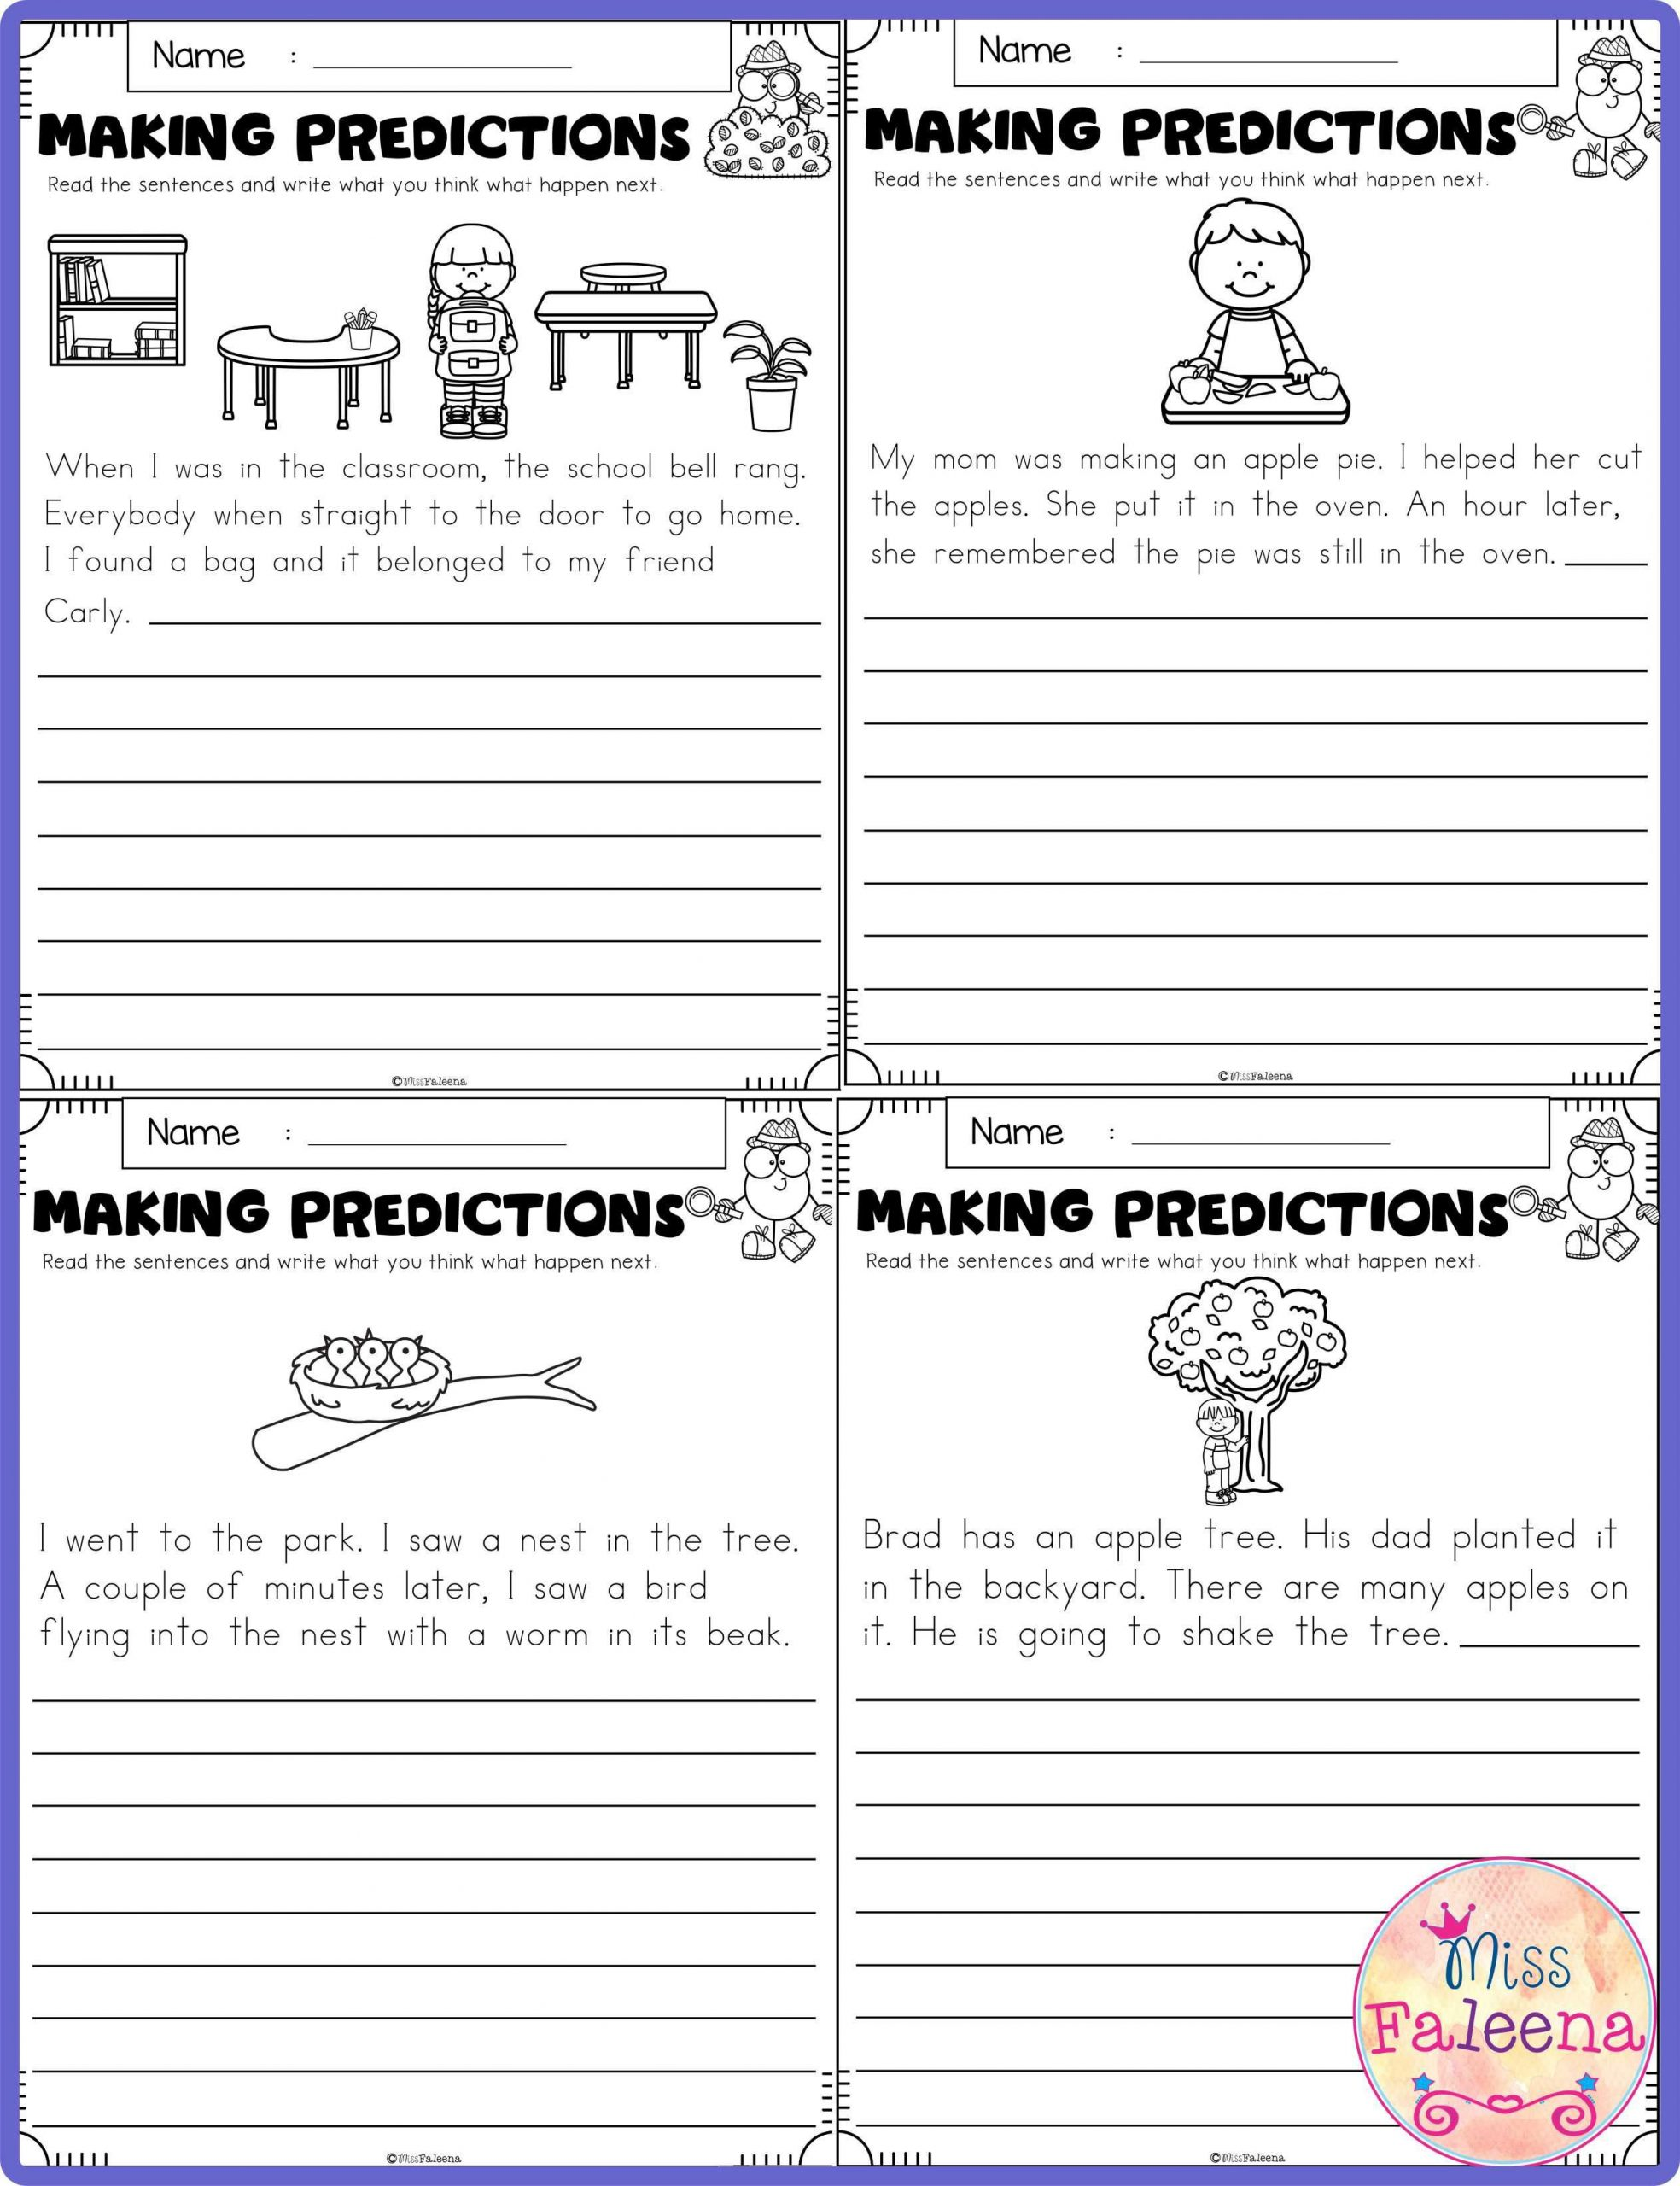 Making Predictions Worksheets 2nd Grade